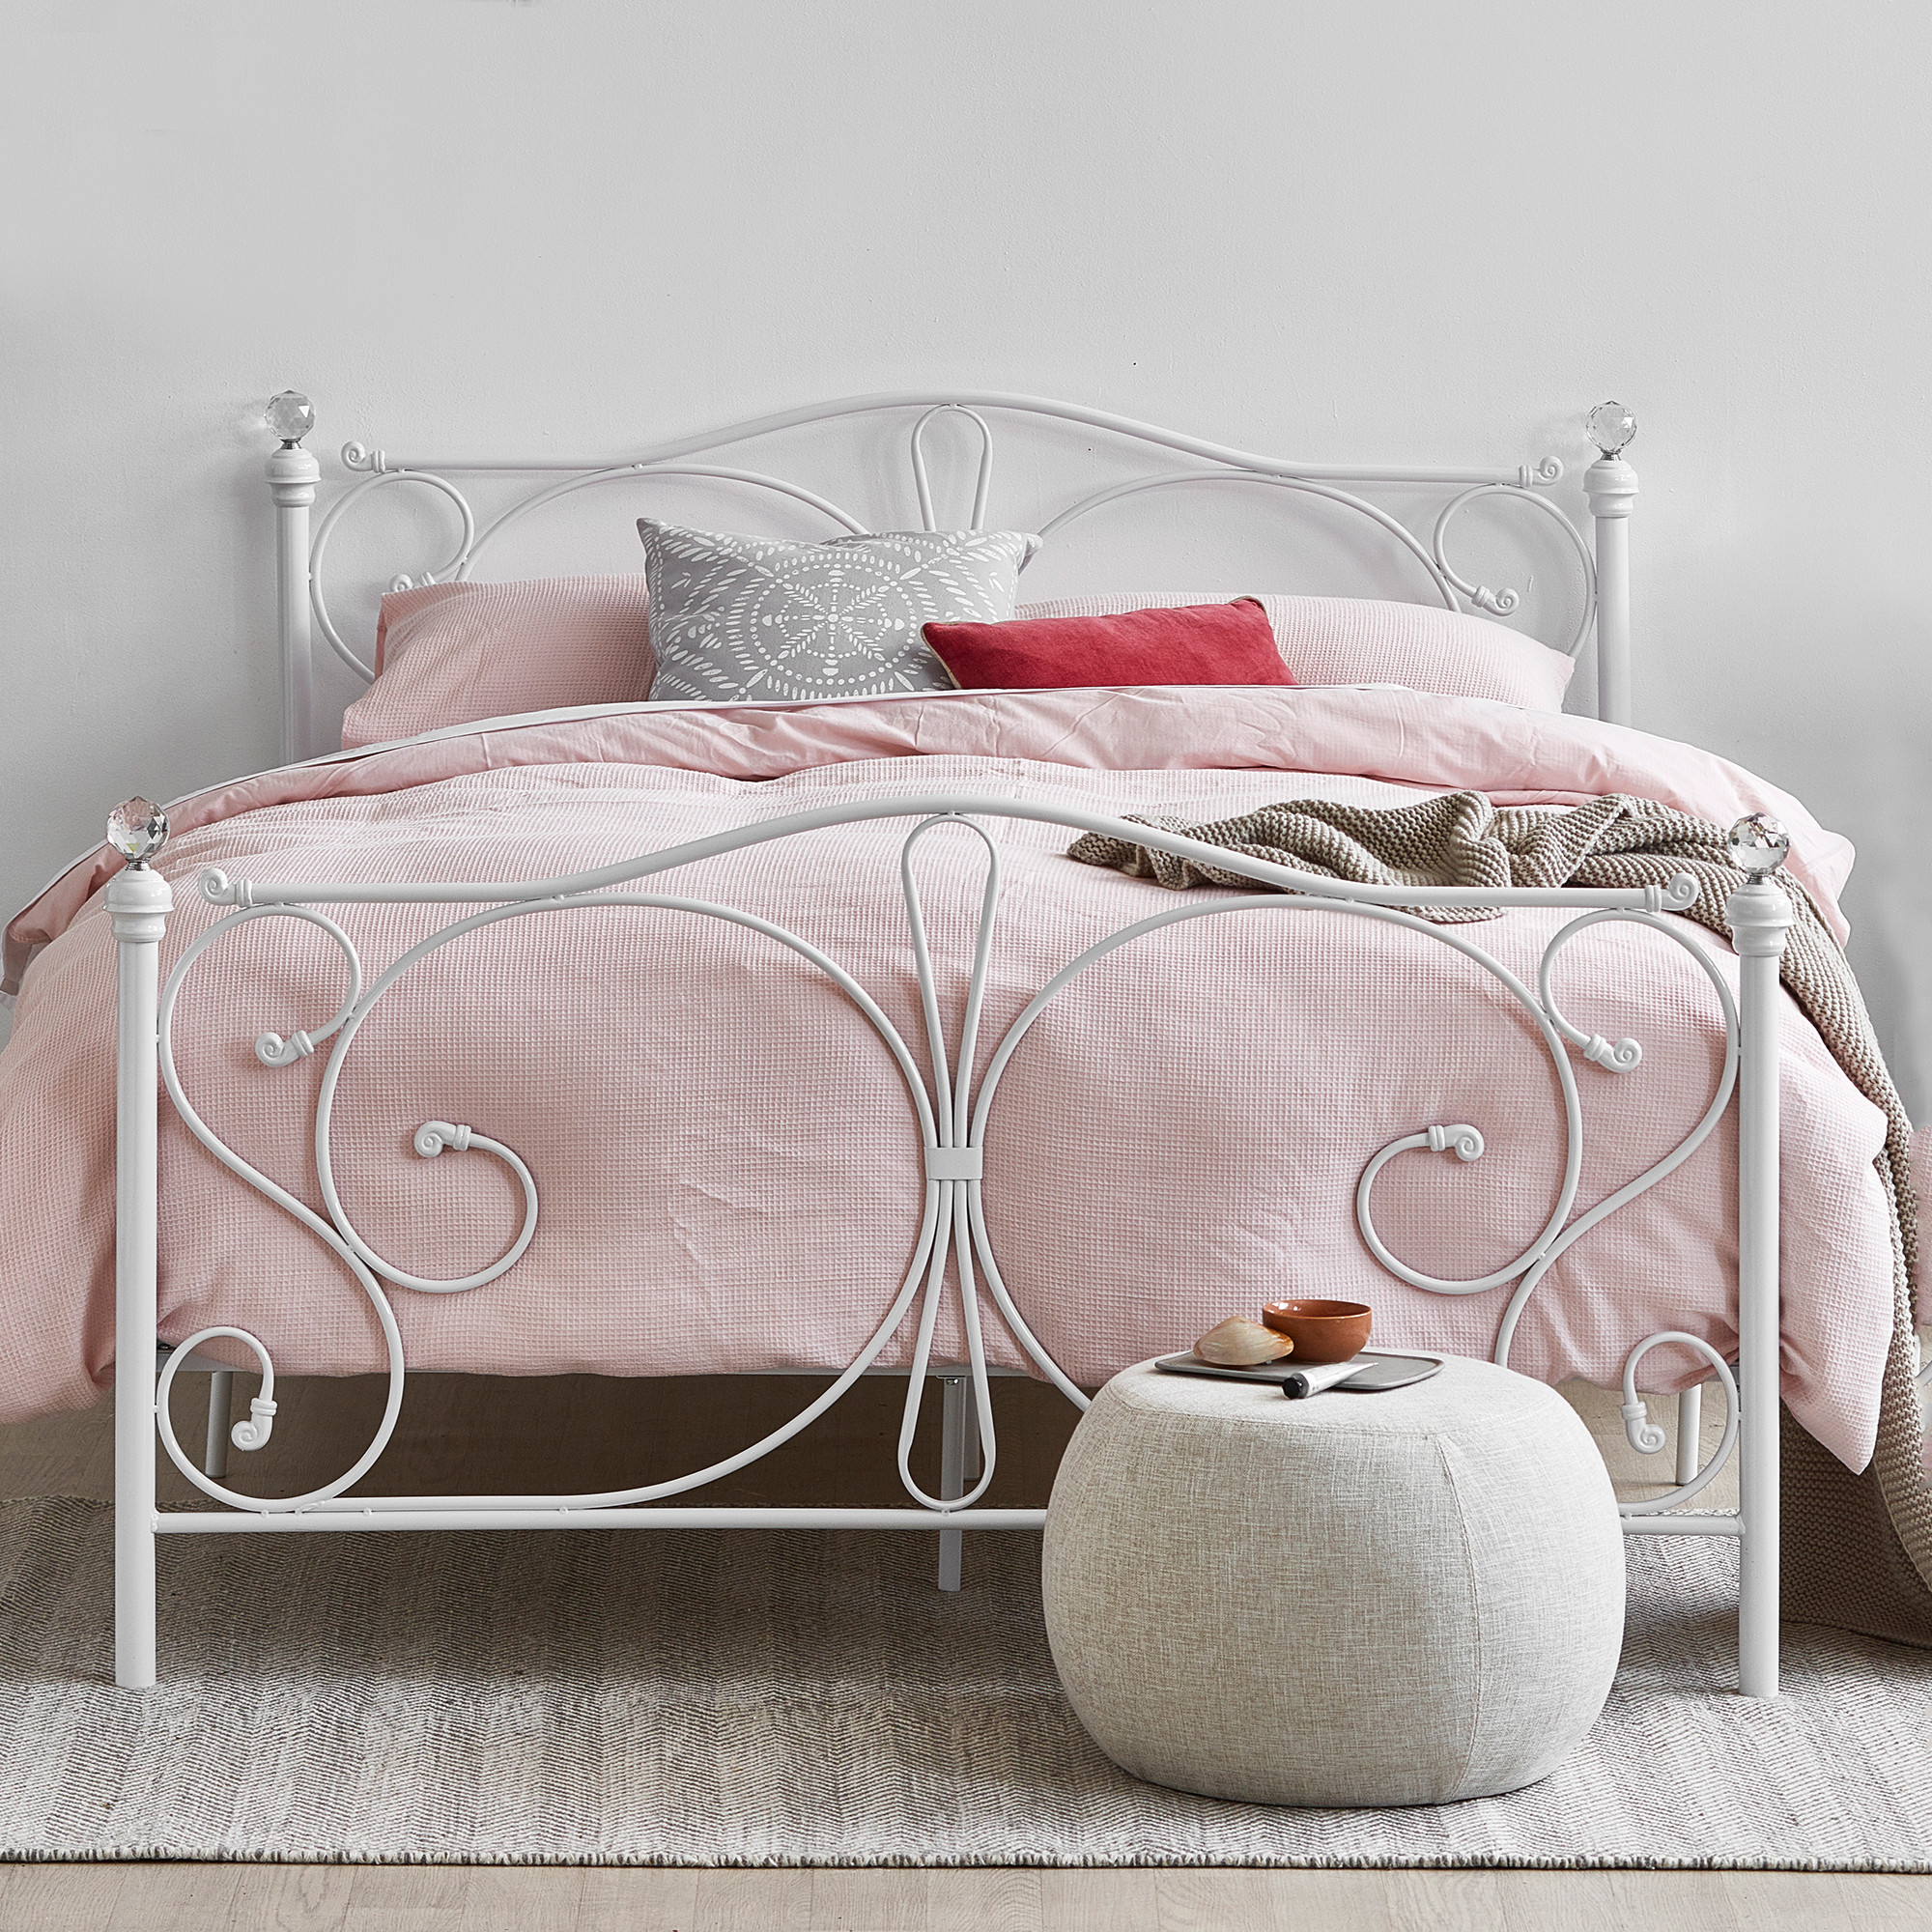 Picture of: White Metal Bed Frame